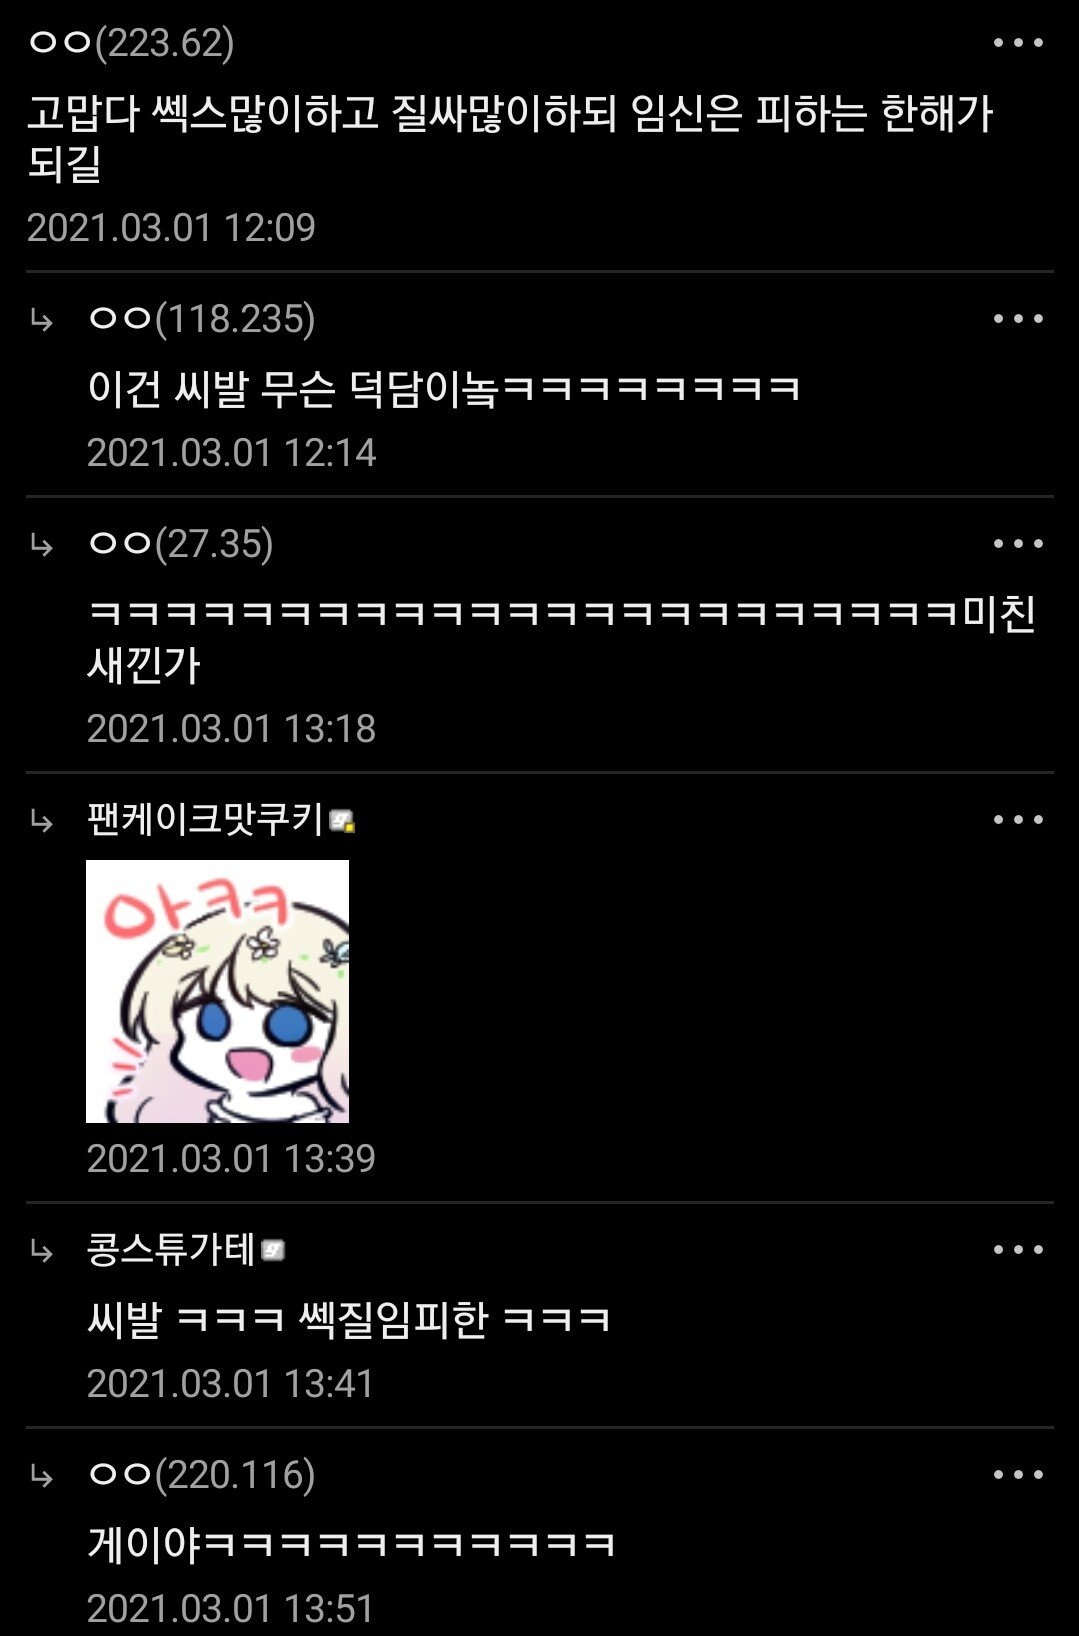 Screenshot_20210302-060135.jpg 디씨식 덕담.sex